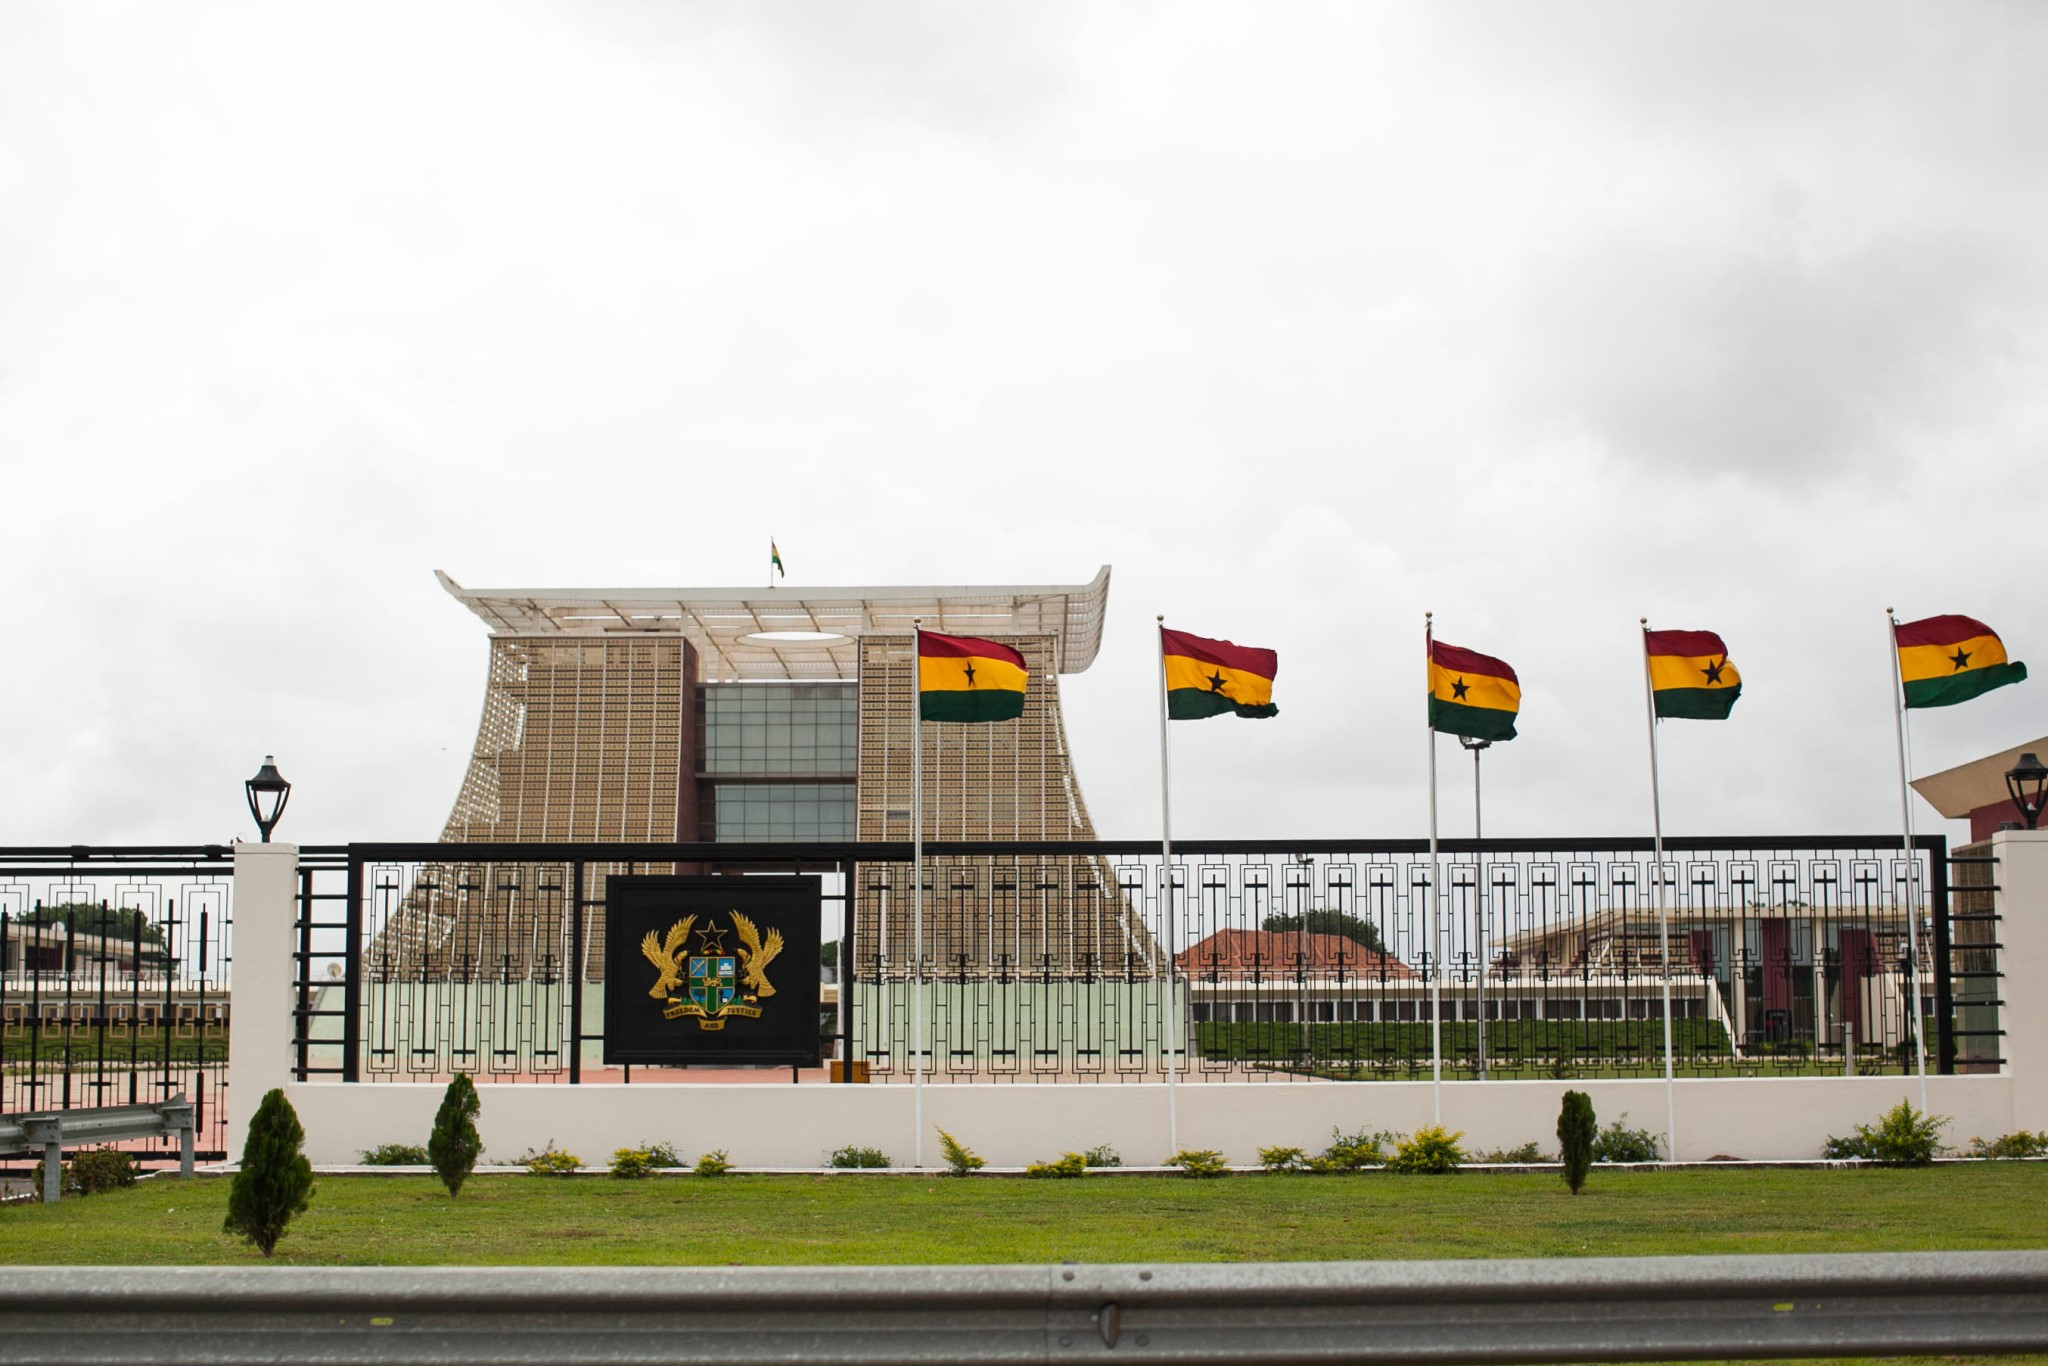 The grounds of the Flagstaff House, the Presidential Palace.